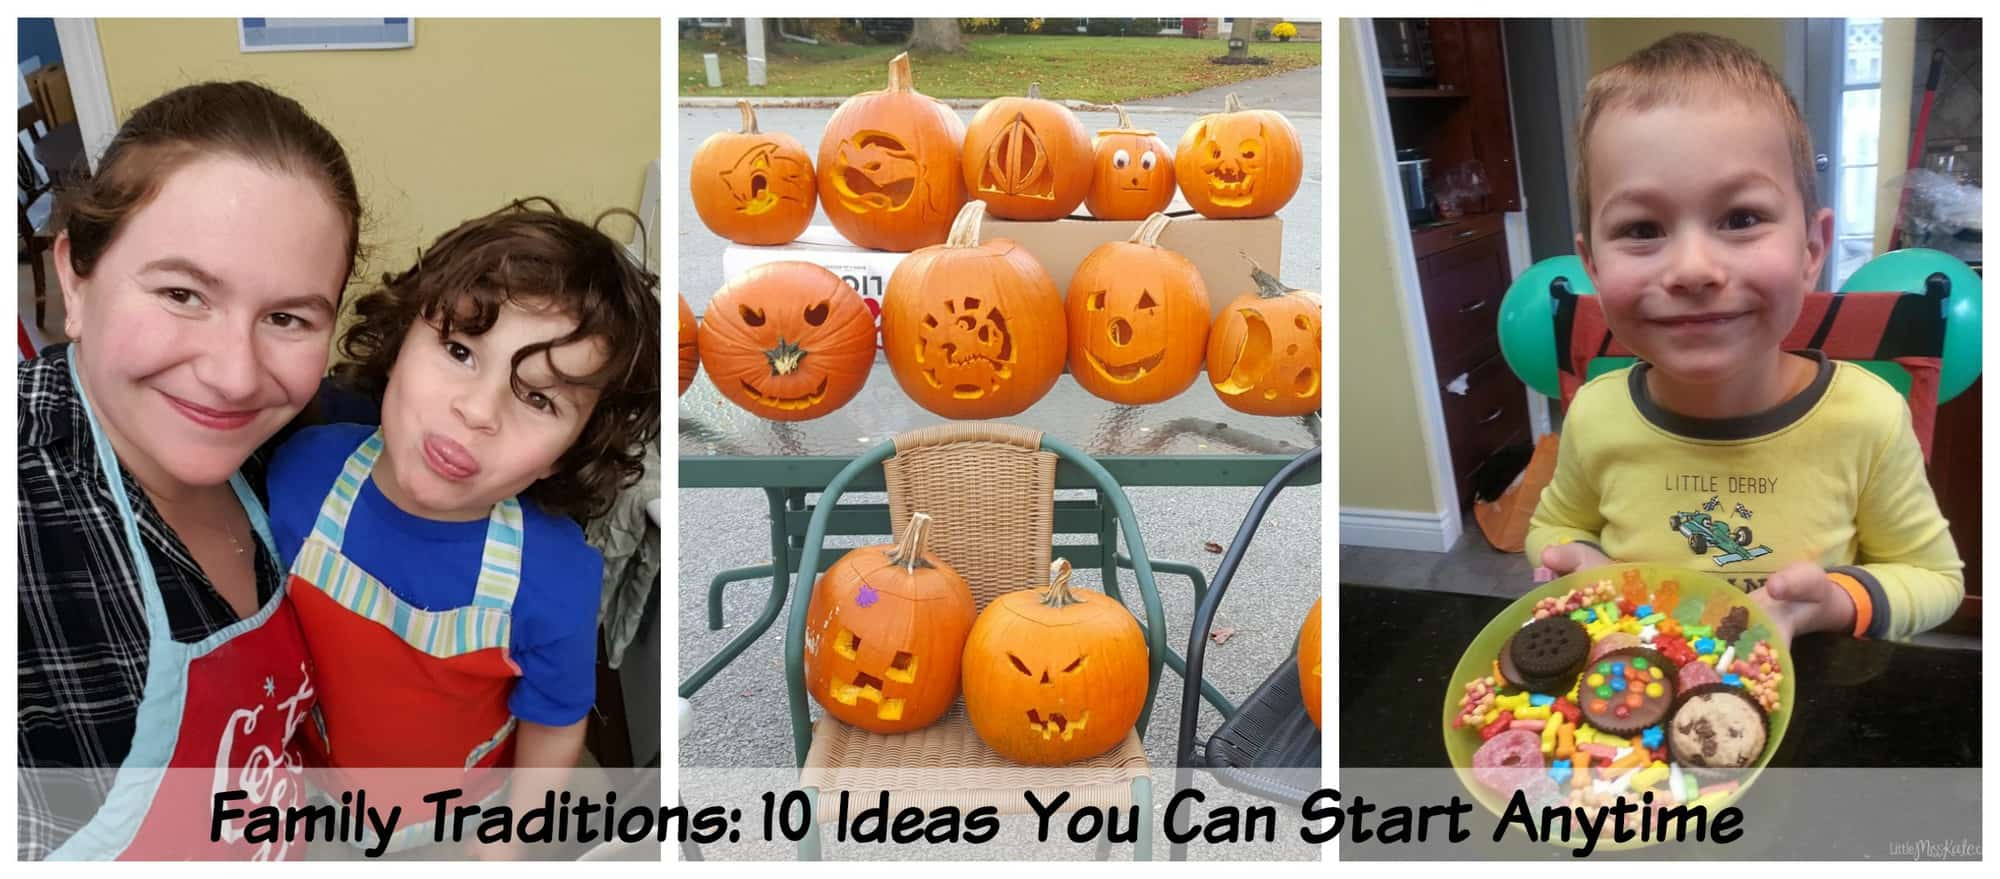 Family Traditions: 10 Ideas You Can Start Anytime